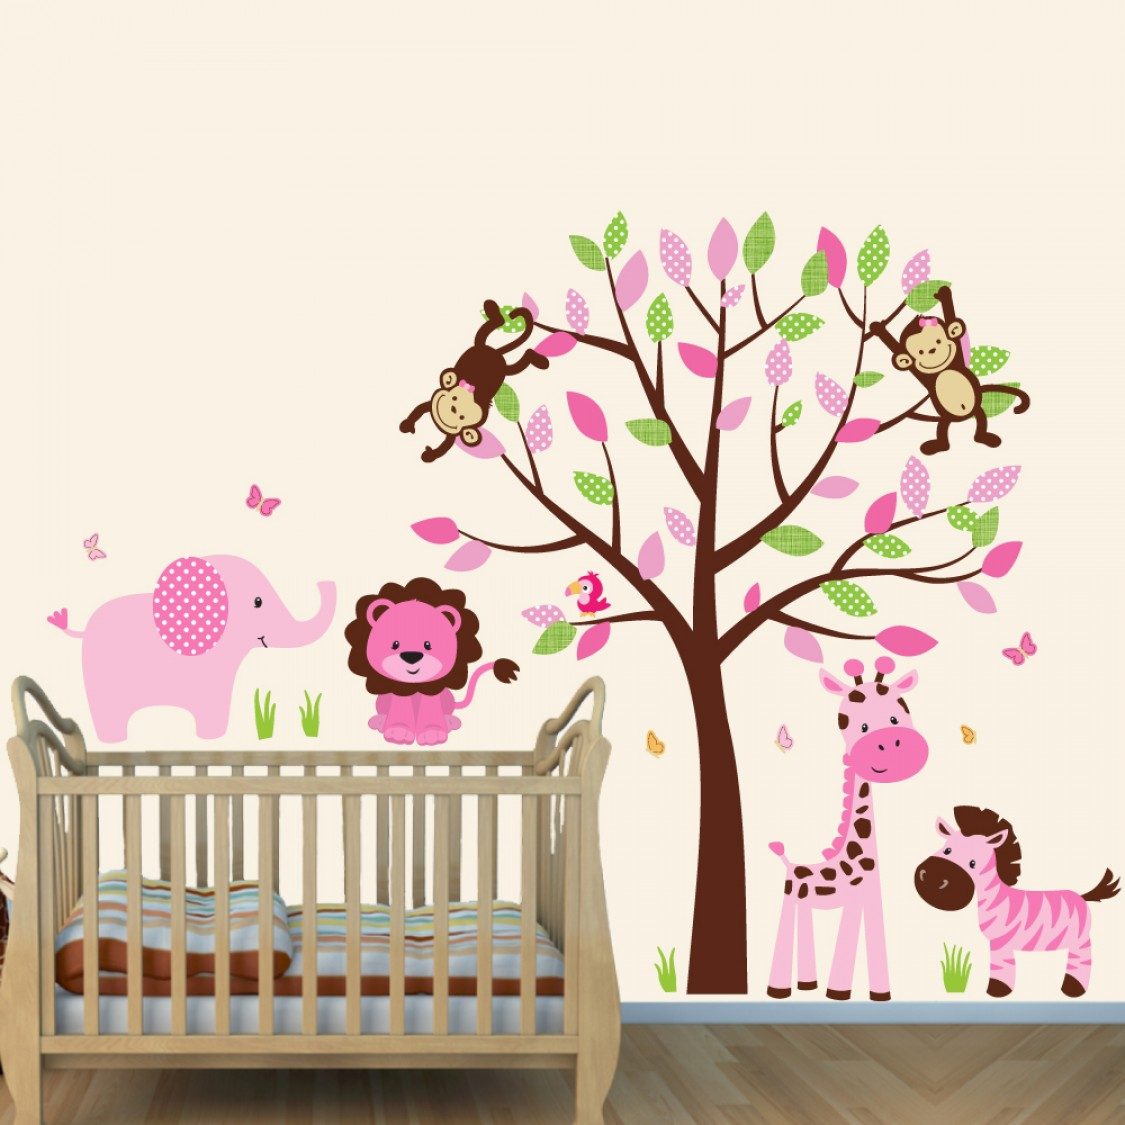 Jungle Tree Wall Decals And Jungle Wall Murals For Nursery Kids - Nursery wall decals jungle